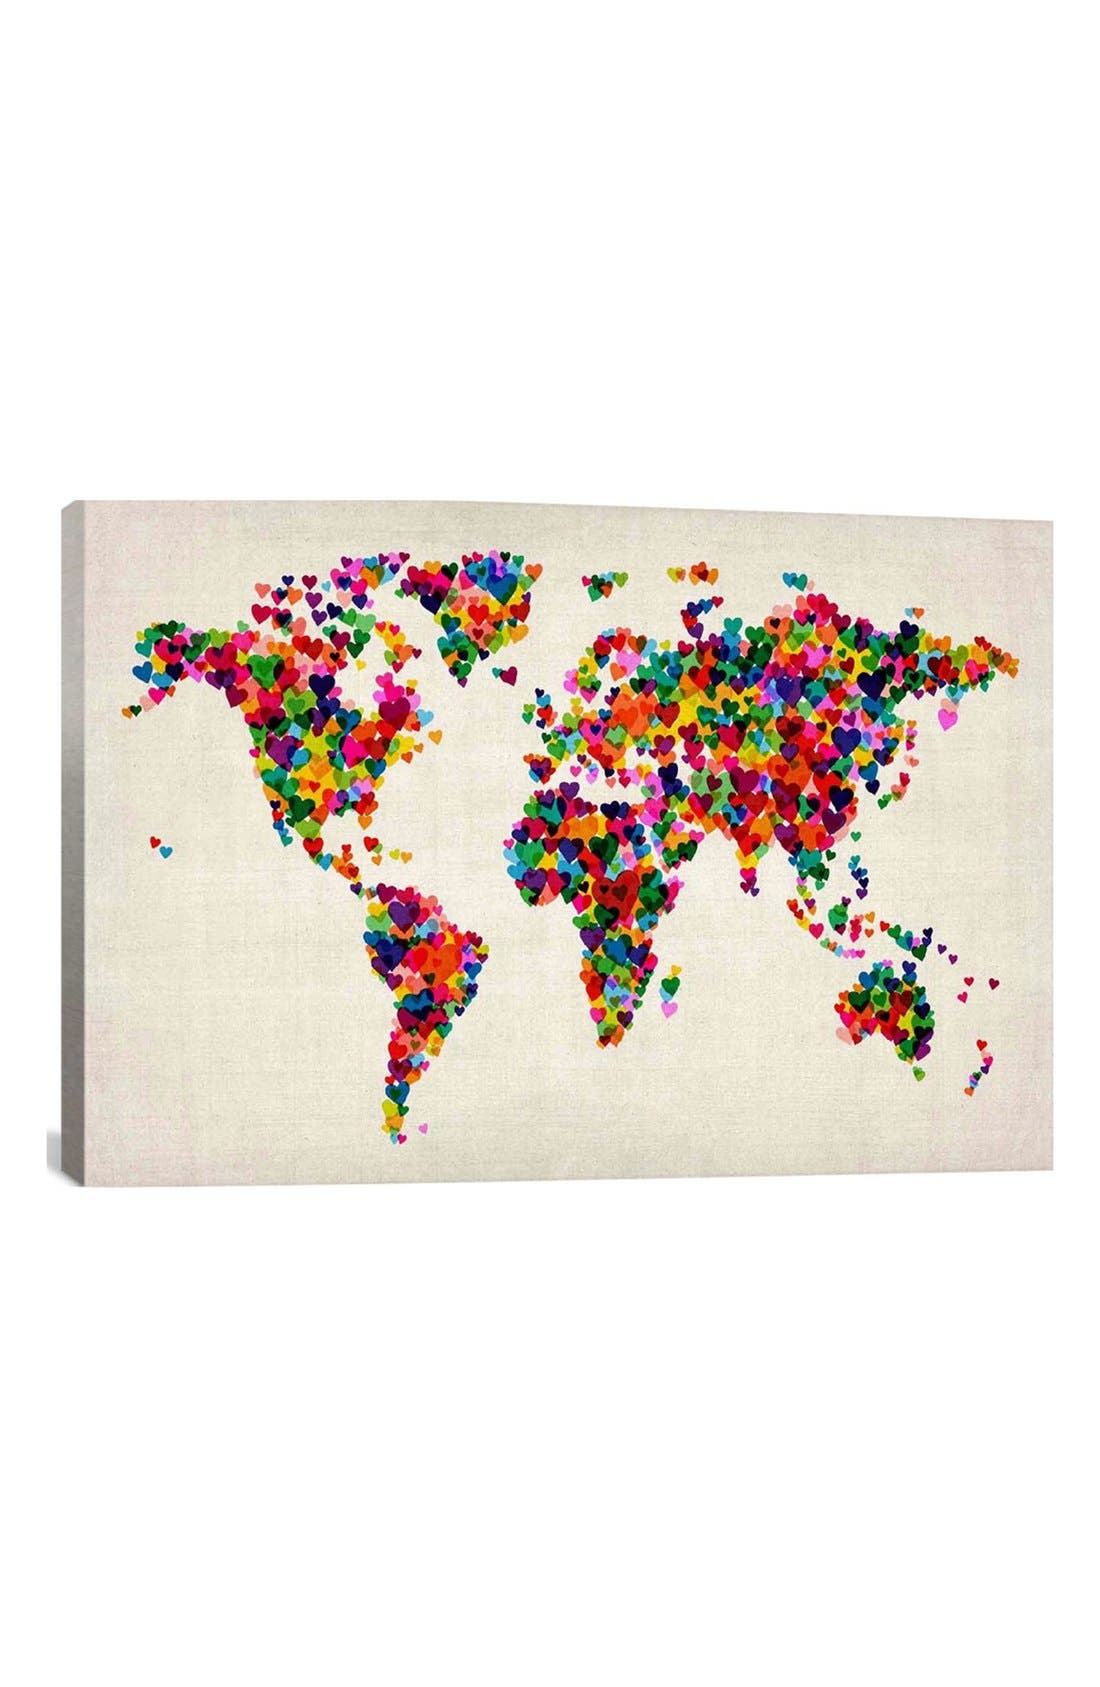 'World Map Hearts - Michael Thompsett' Giclée Print Canvas Art,                         Main,                         color, White/ Multi